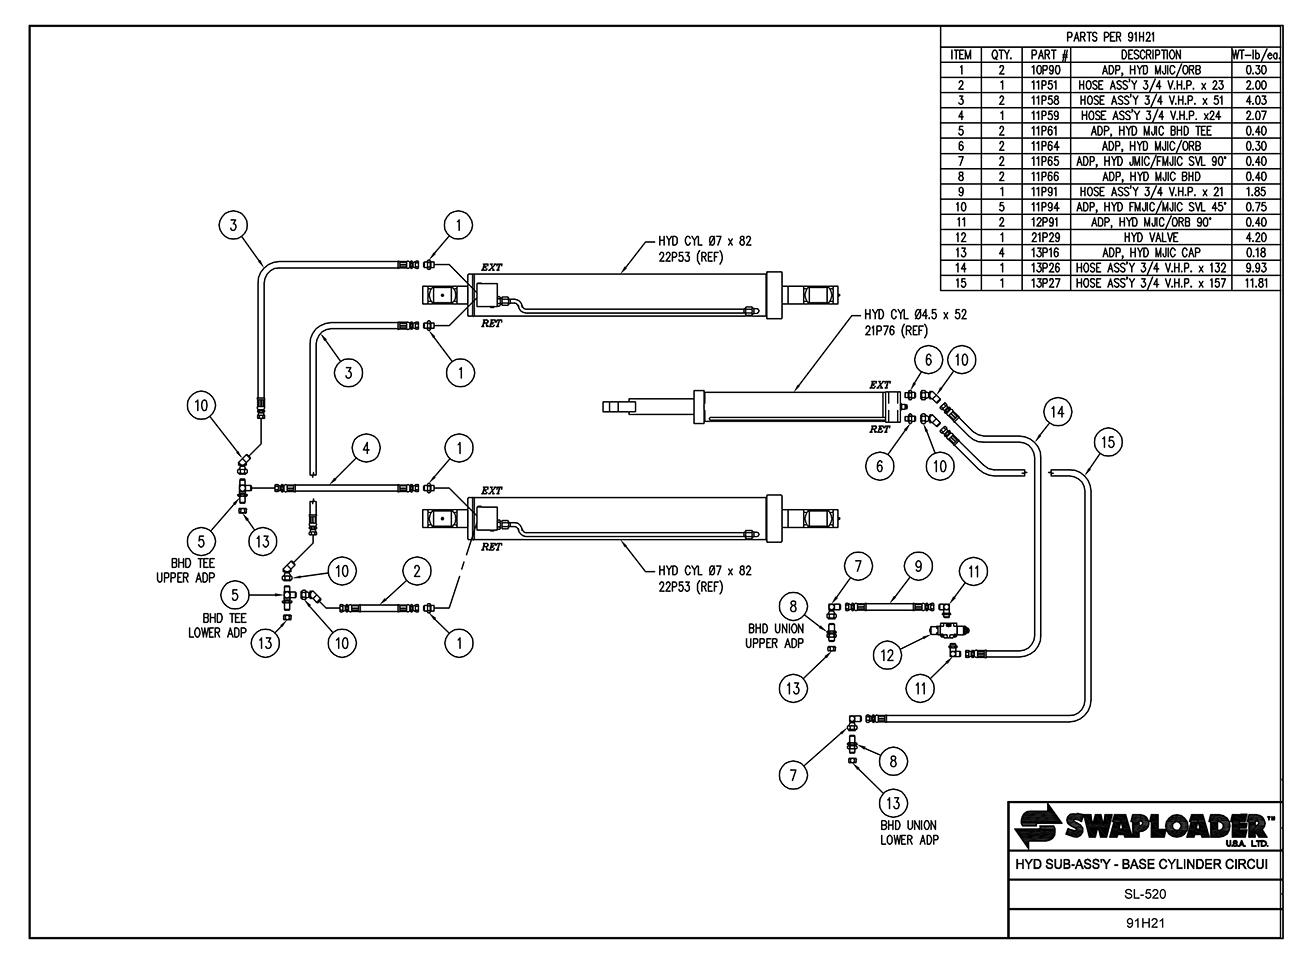 SL-520 Hydraulic Sub-Assembly Base Cylinder Circuit Diagram